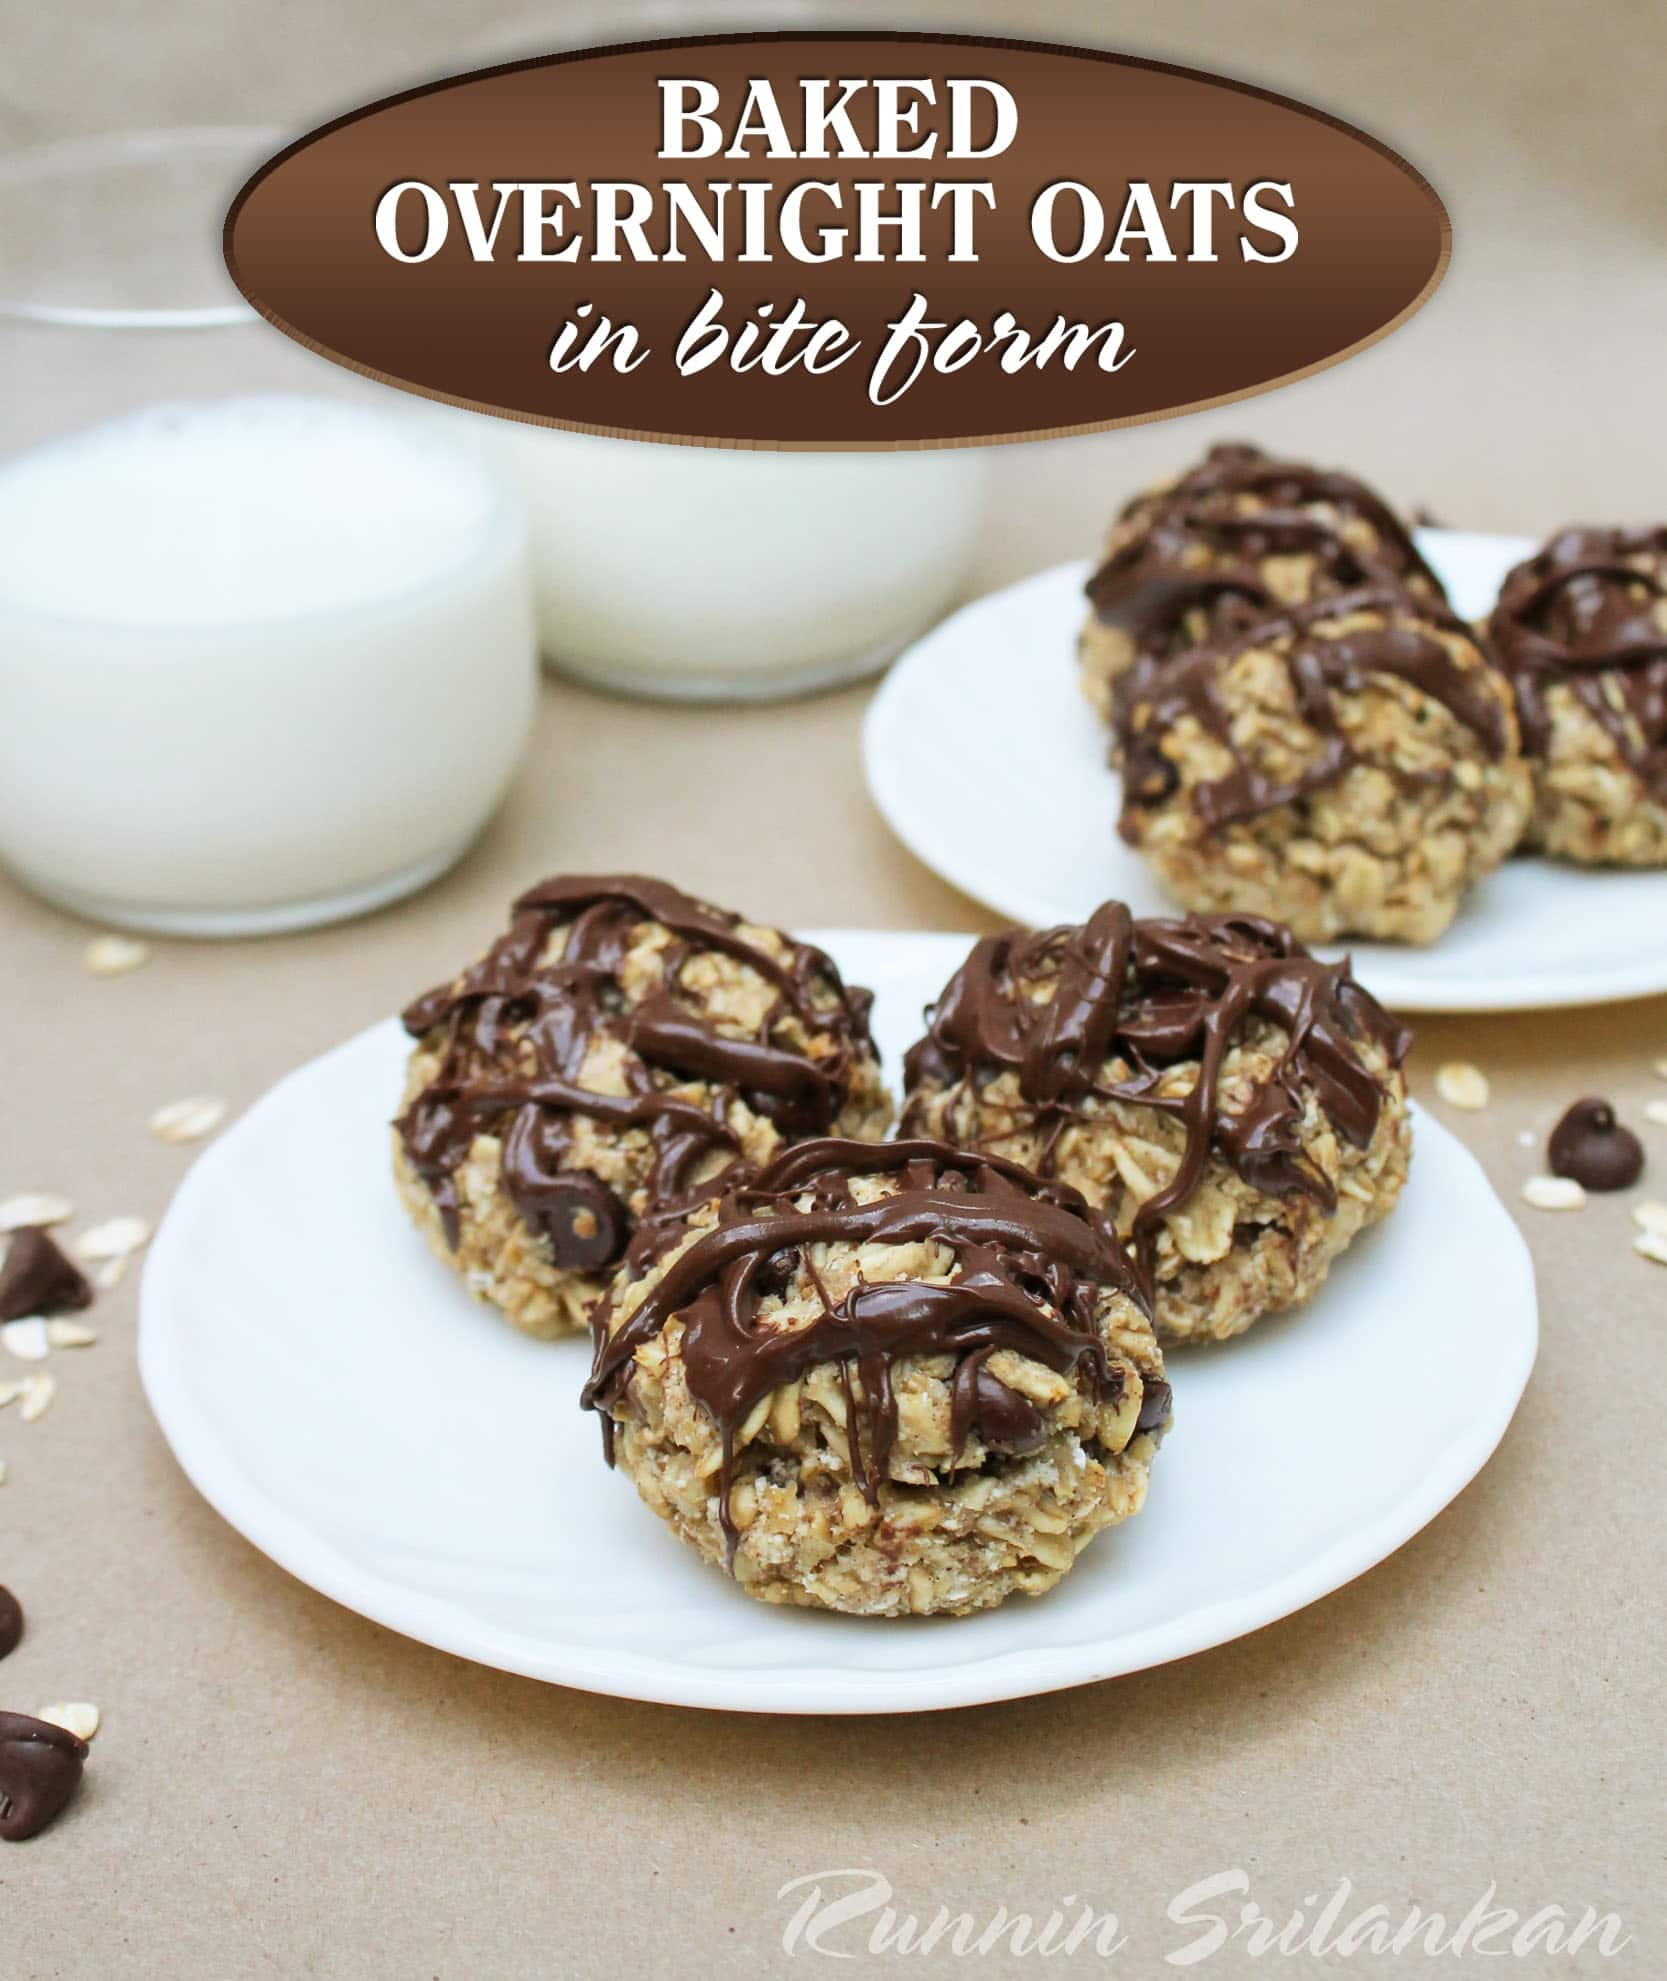 baked overnight oats in bite form